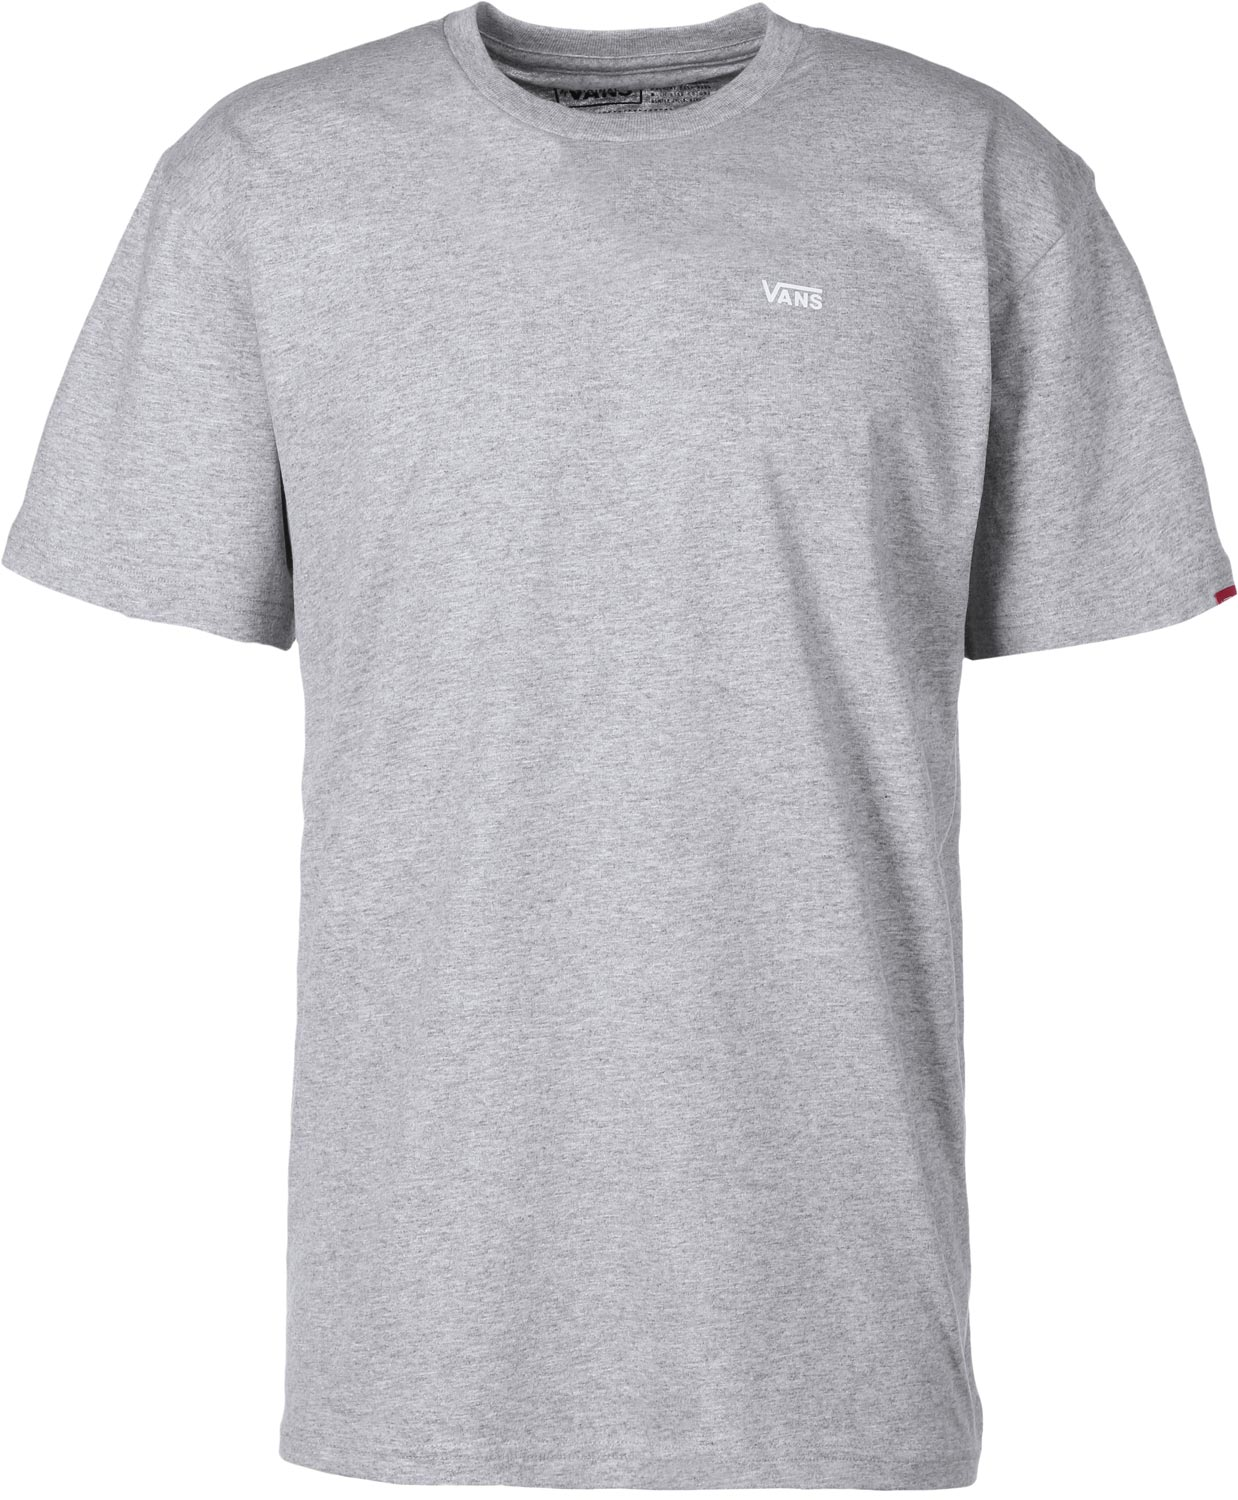 VANS tričko LEFT CHEST LOGO TEE- grey